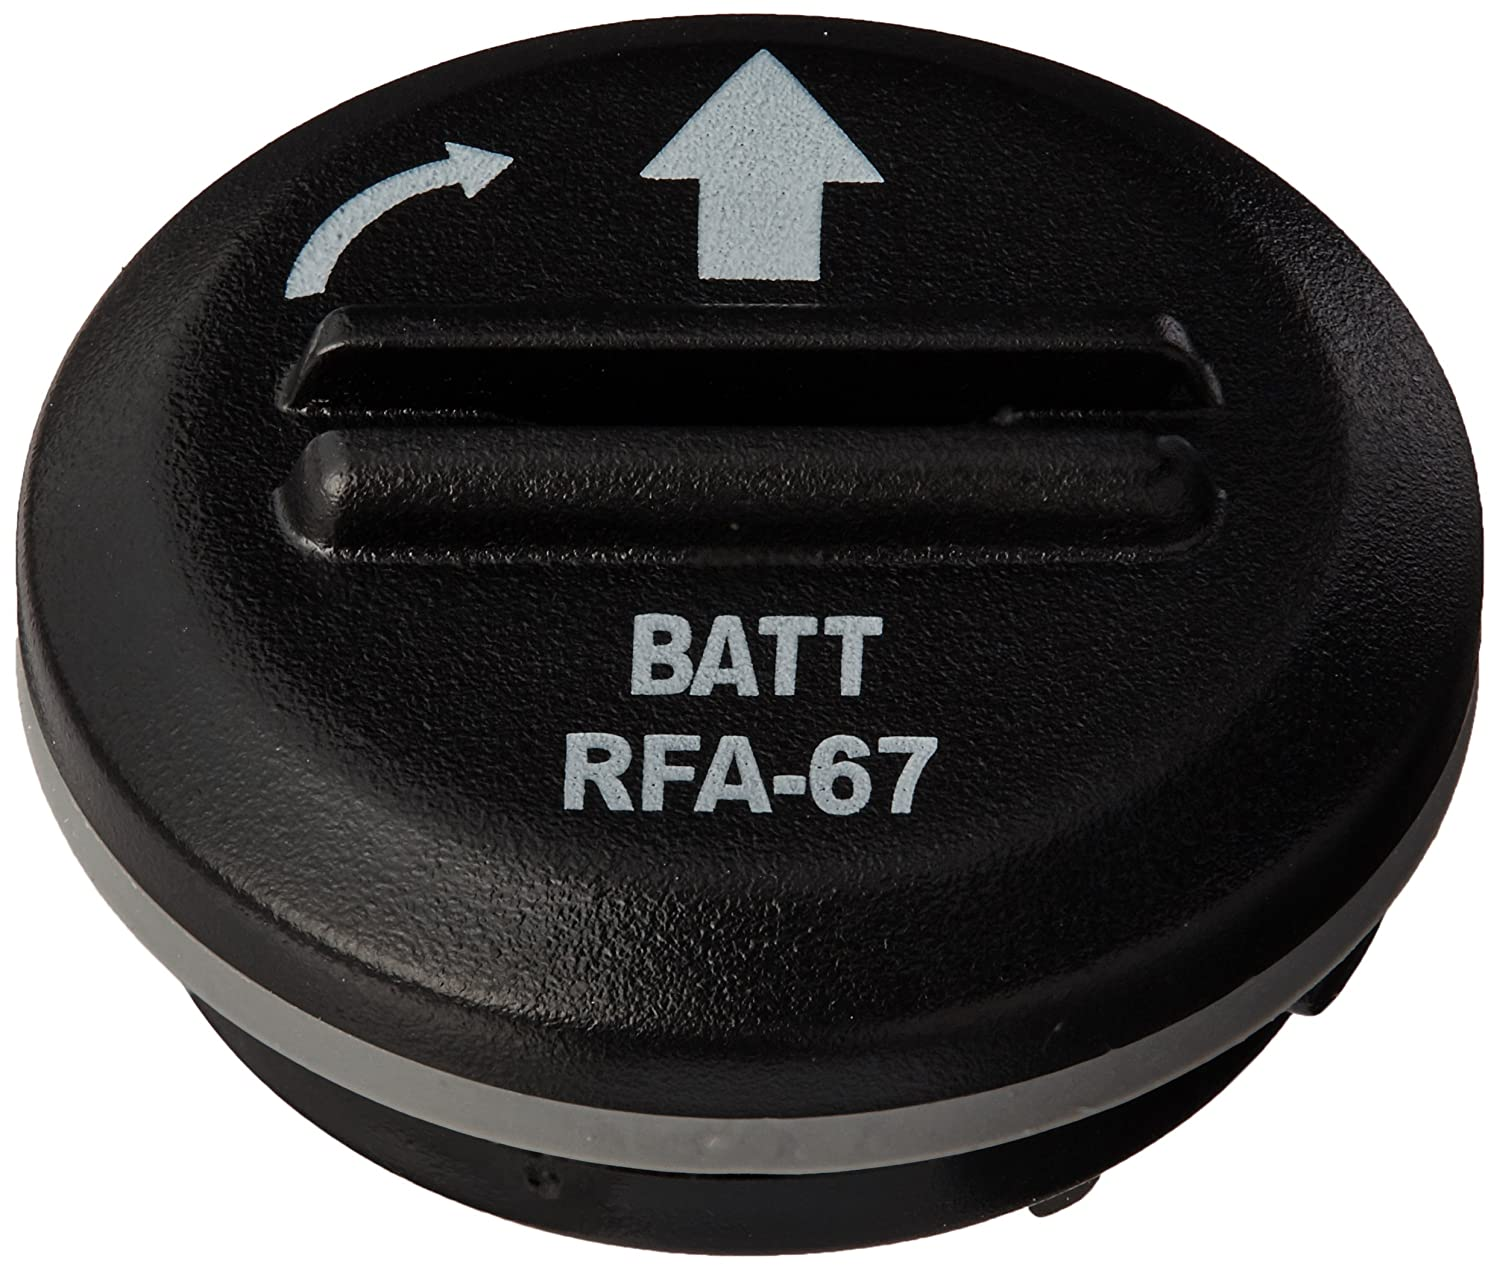 Pet Safe RFA-67D 6-Volt Battery, Economy, 12 Batteries, Pack of 6. A.C. Kerman - Pet Products RFA-67D-11-6